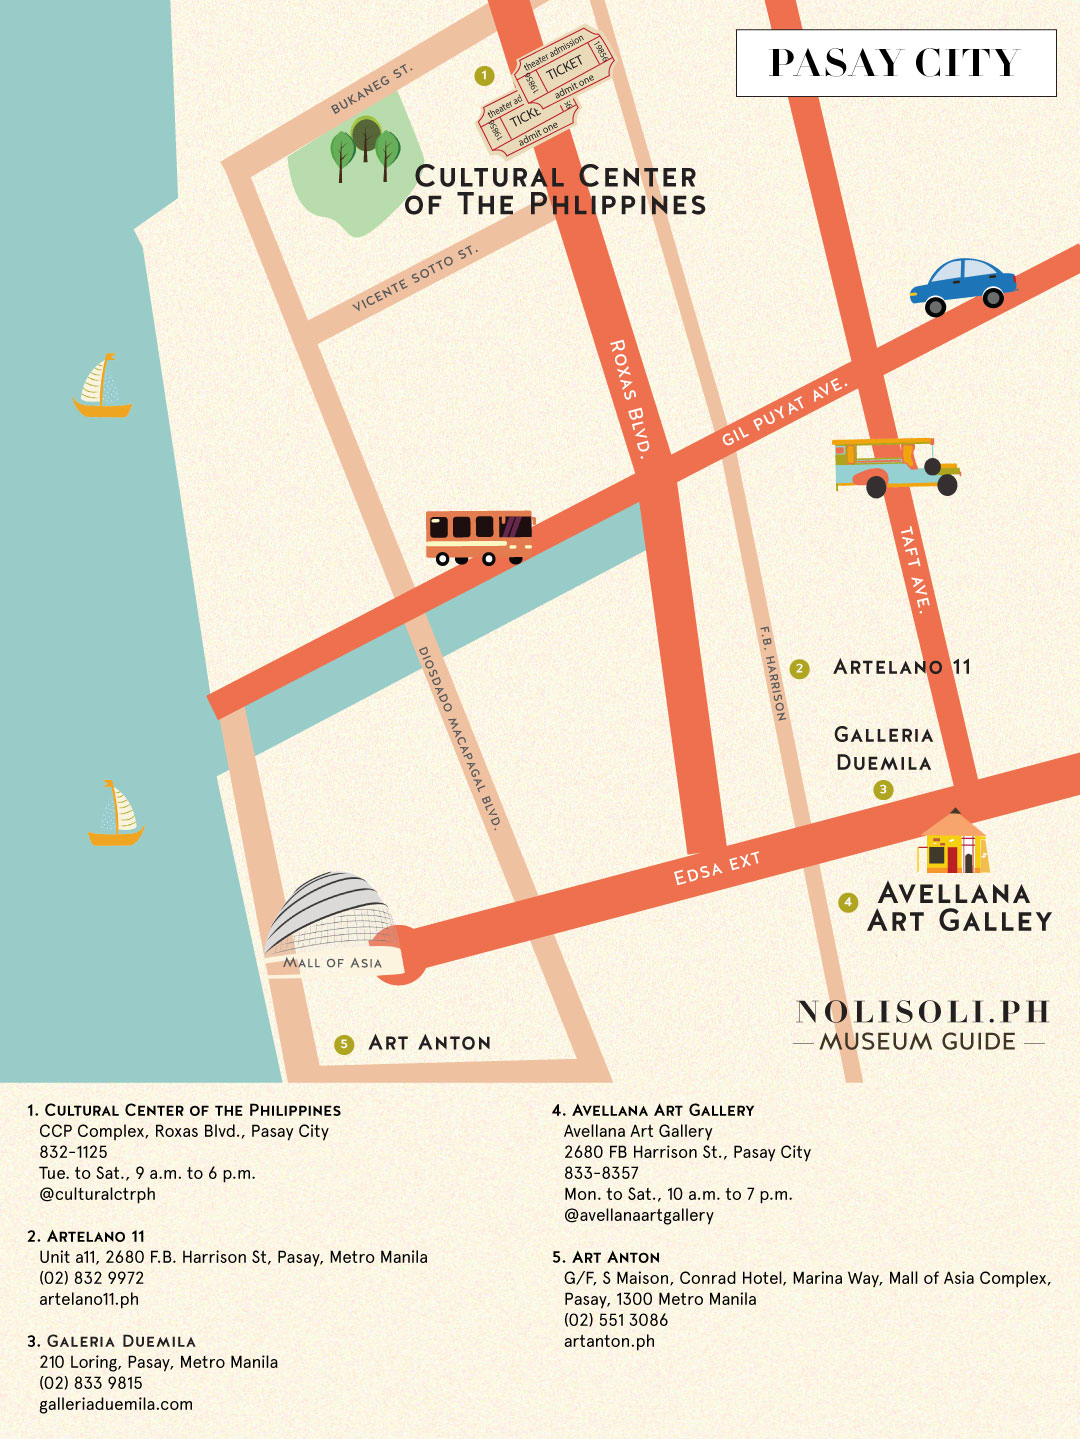 nolisoli museum art gallery map pasay